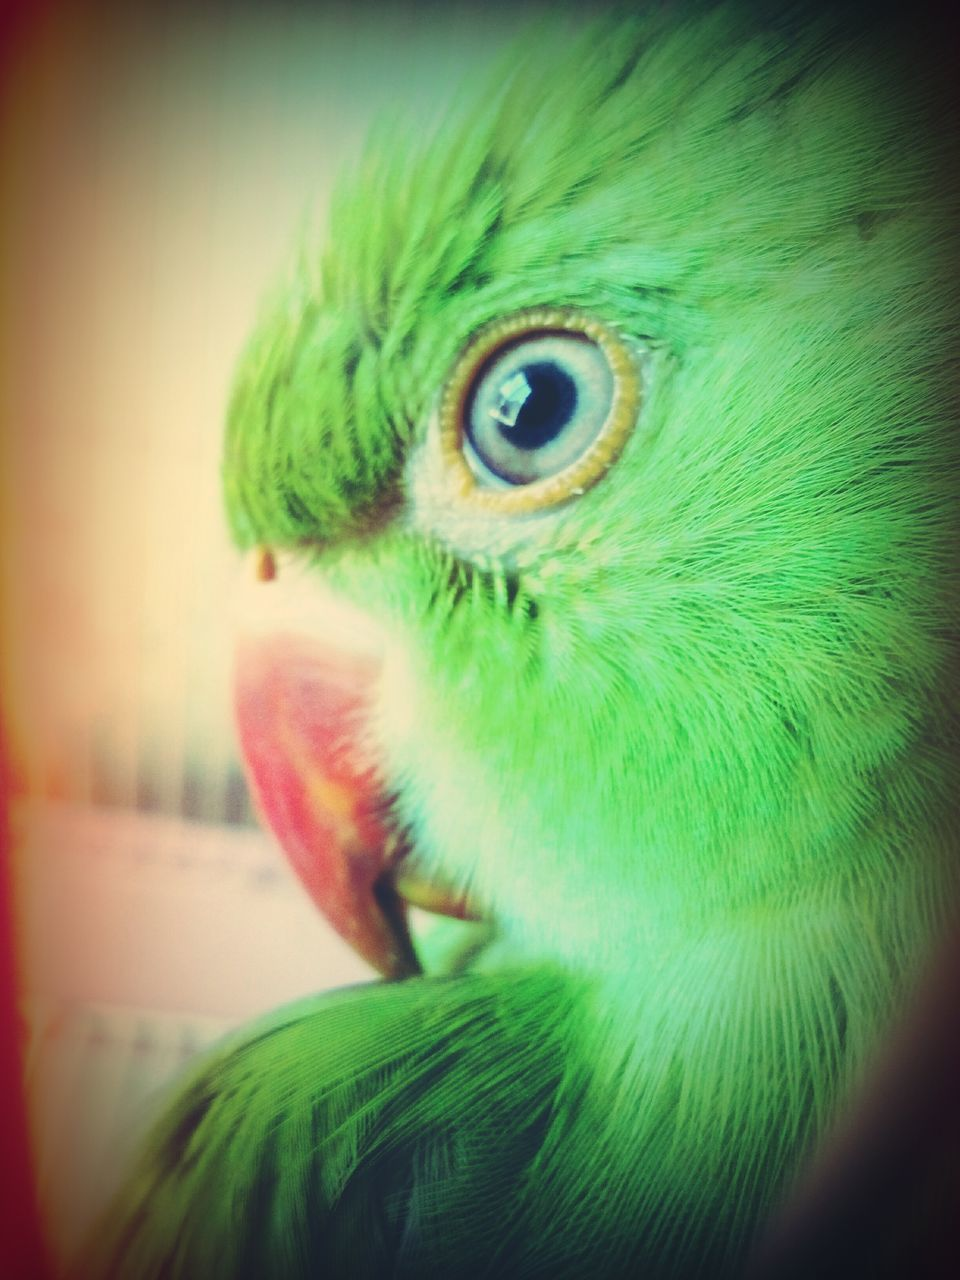 one animal, animal themes, close-up, green color, bird, animals in the wild, animal head, vignette, no people, animal wildlife, parrot, indoors, day, nature, eyeball